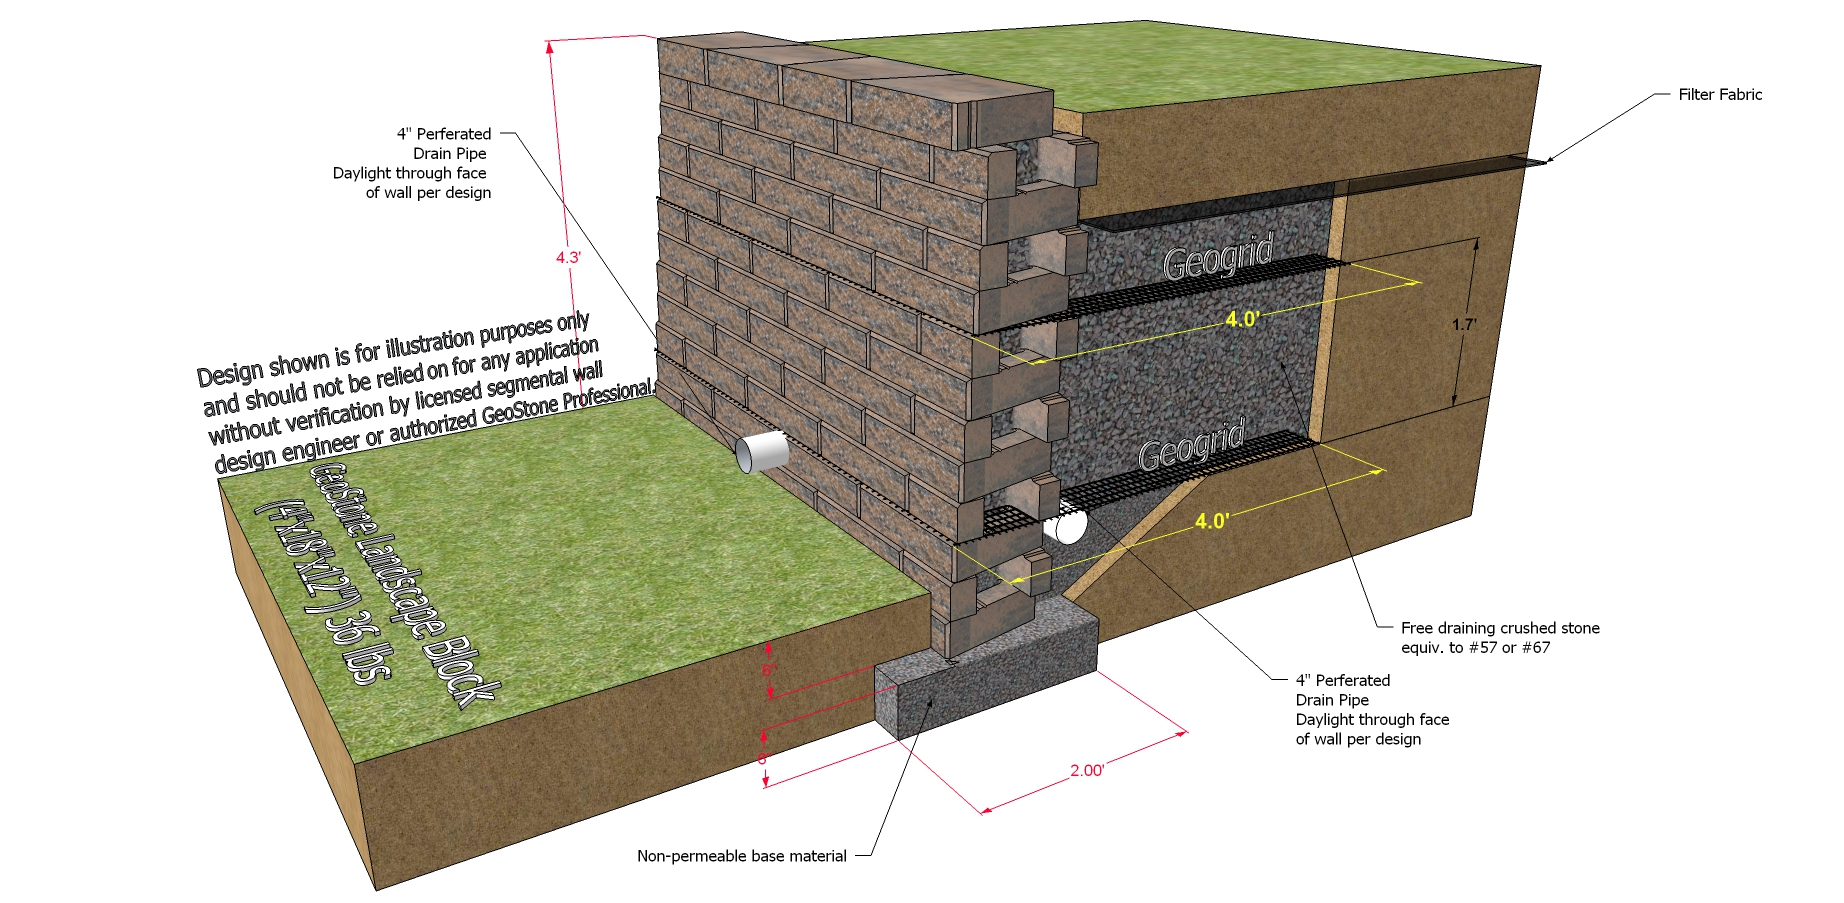 geostone modular retaining wall 4 ft height cross section - Segmental Retaining Wall Design 2